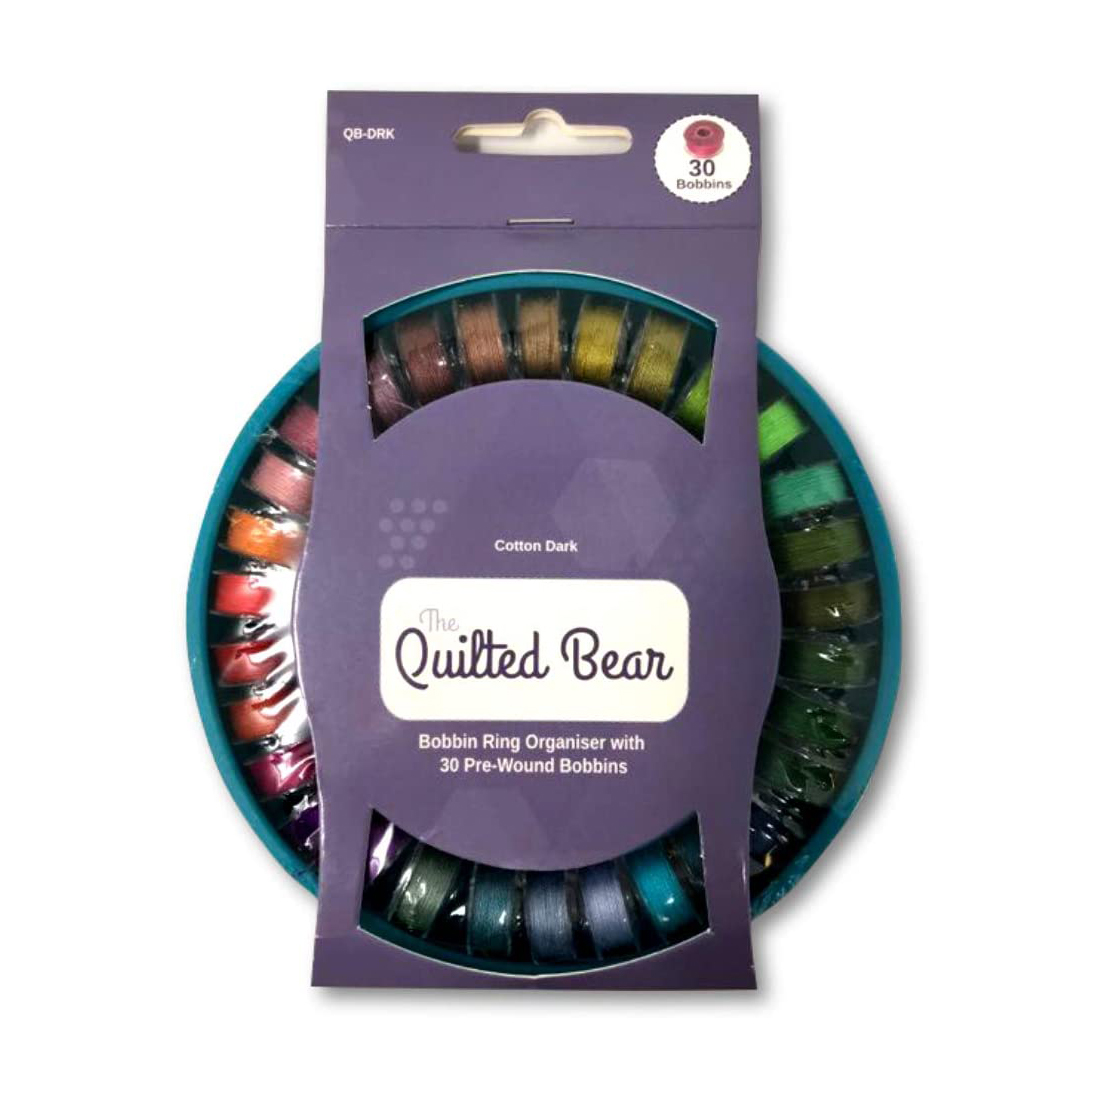 The Quilted Bear Bobbin Ring Organiser with 30 Pre-Wound Bobbins (Dark Threads)